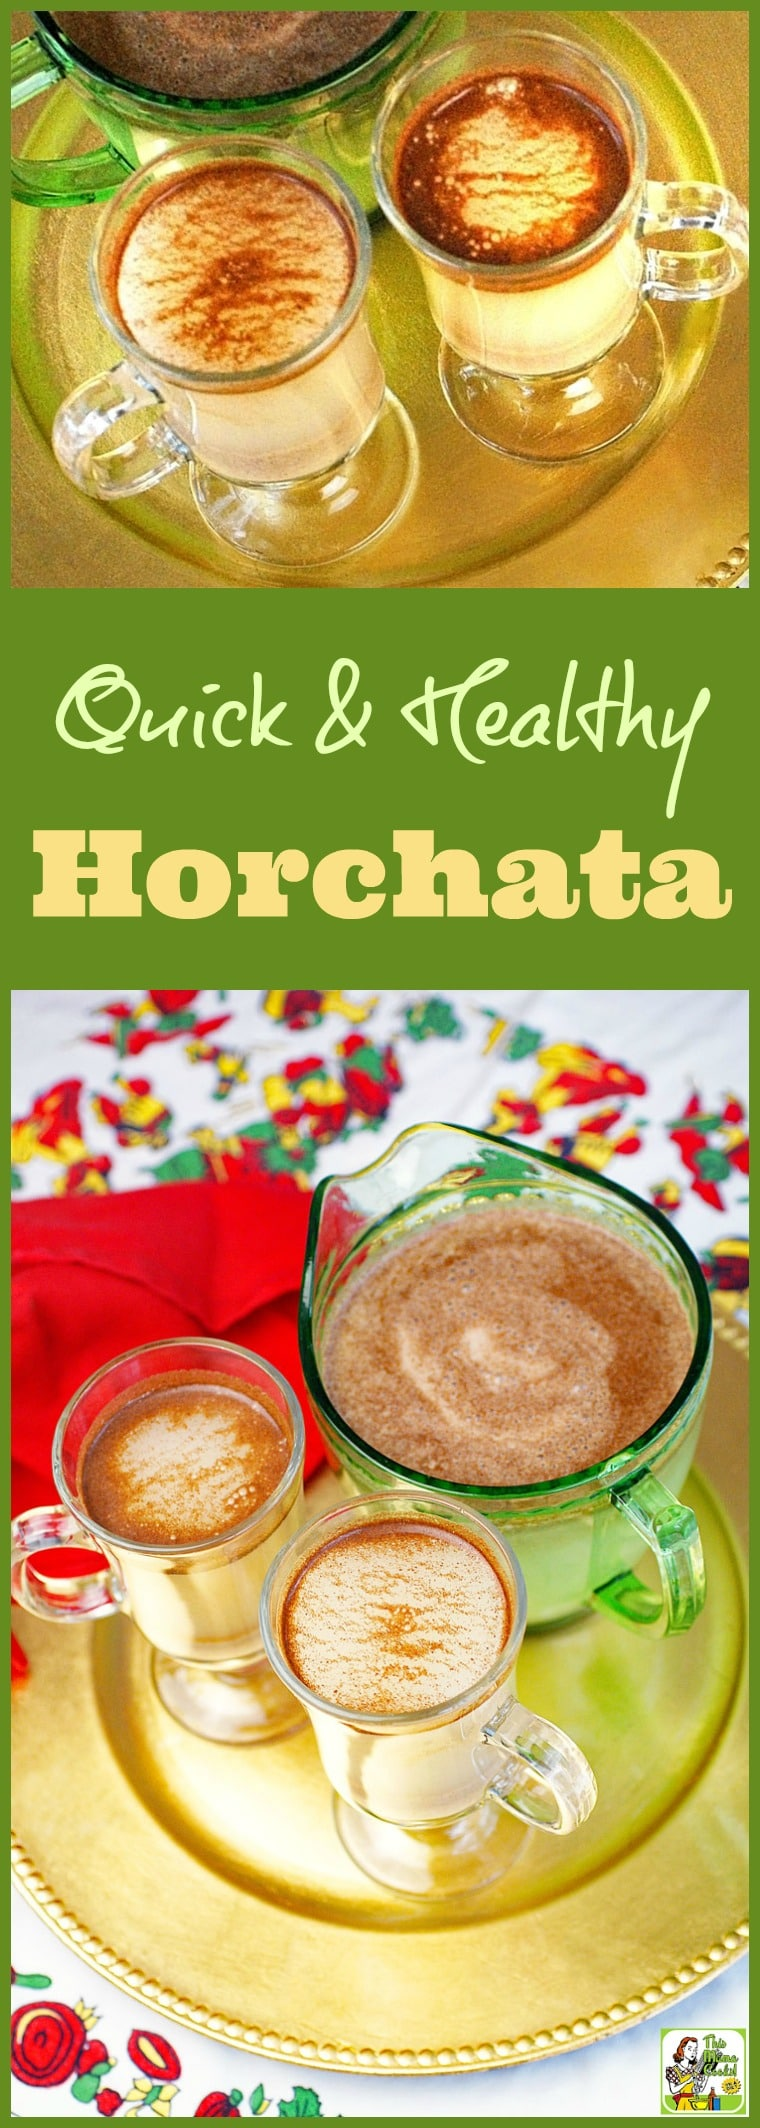 Quick & Healthy Horchata